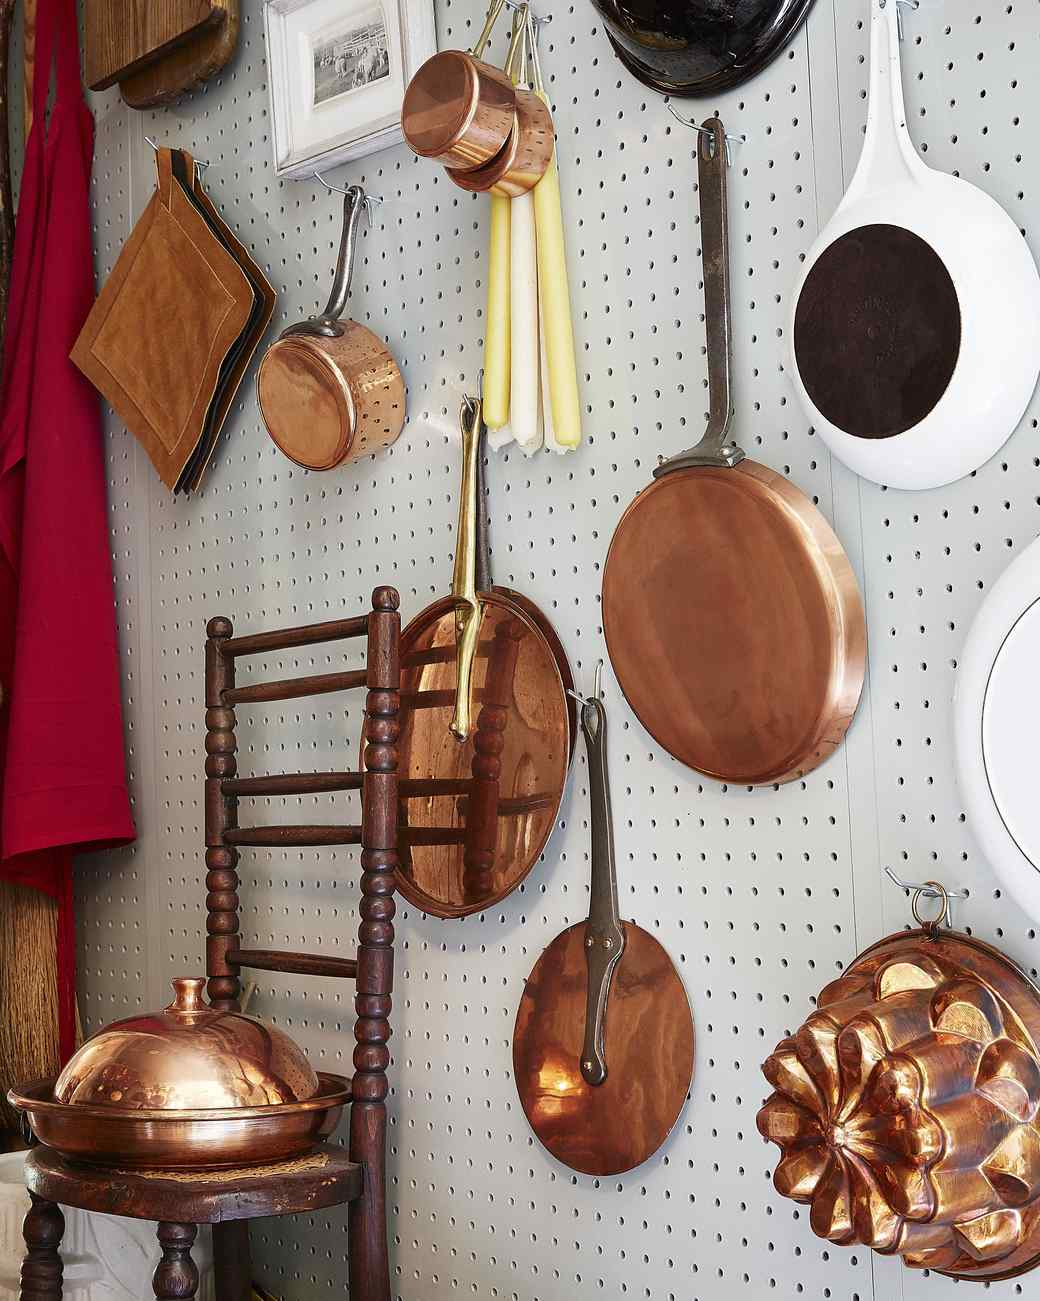 peg board wall with assortment of copper and ceramic wares